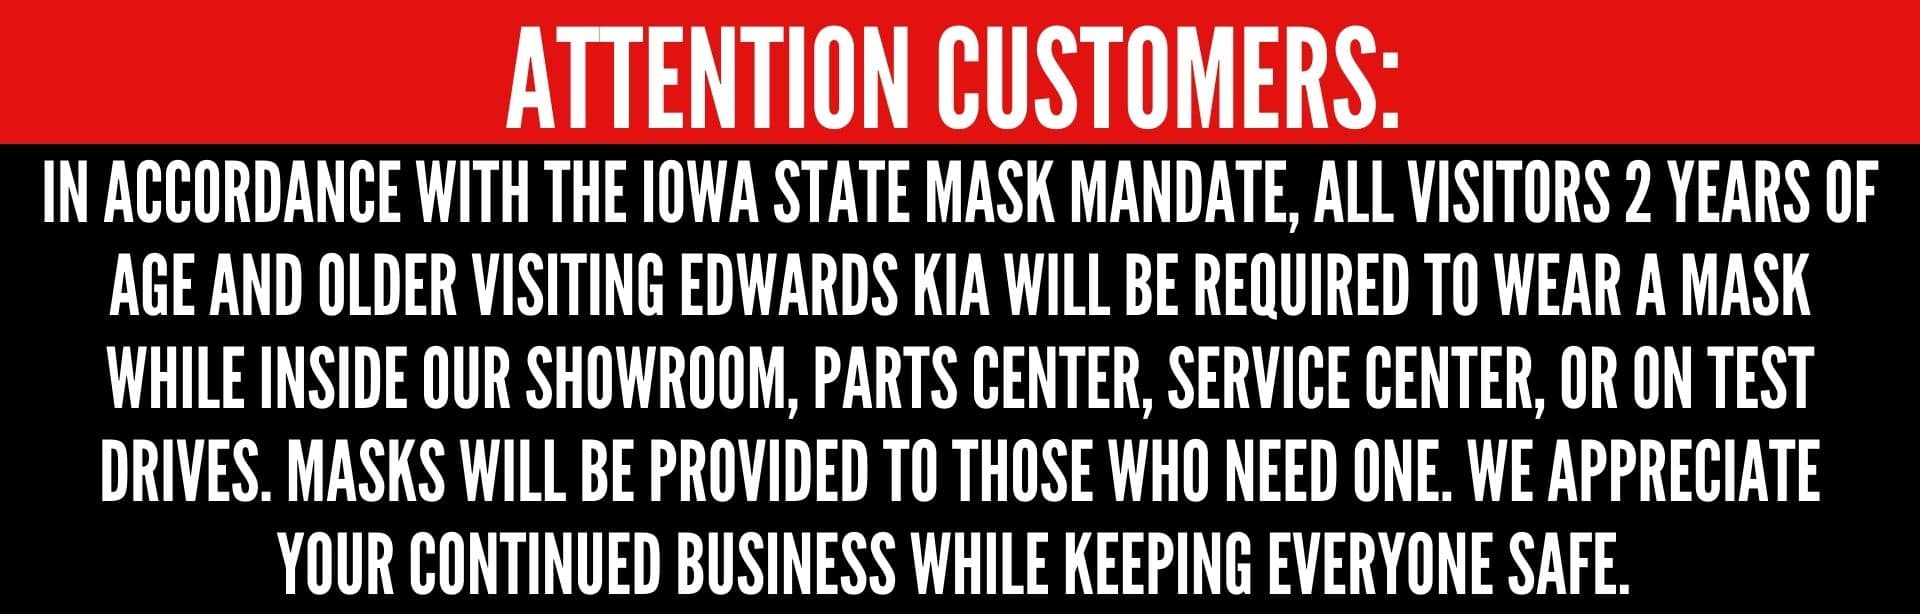 Msust wear a mask at Edwards Kia